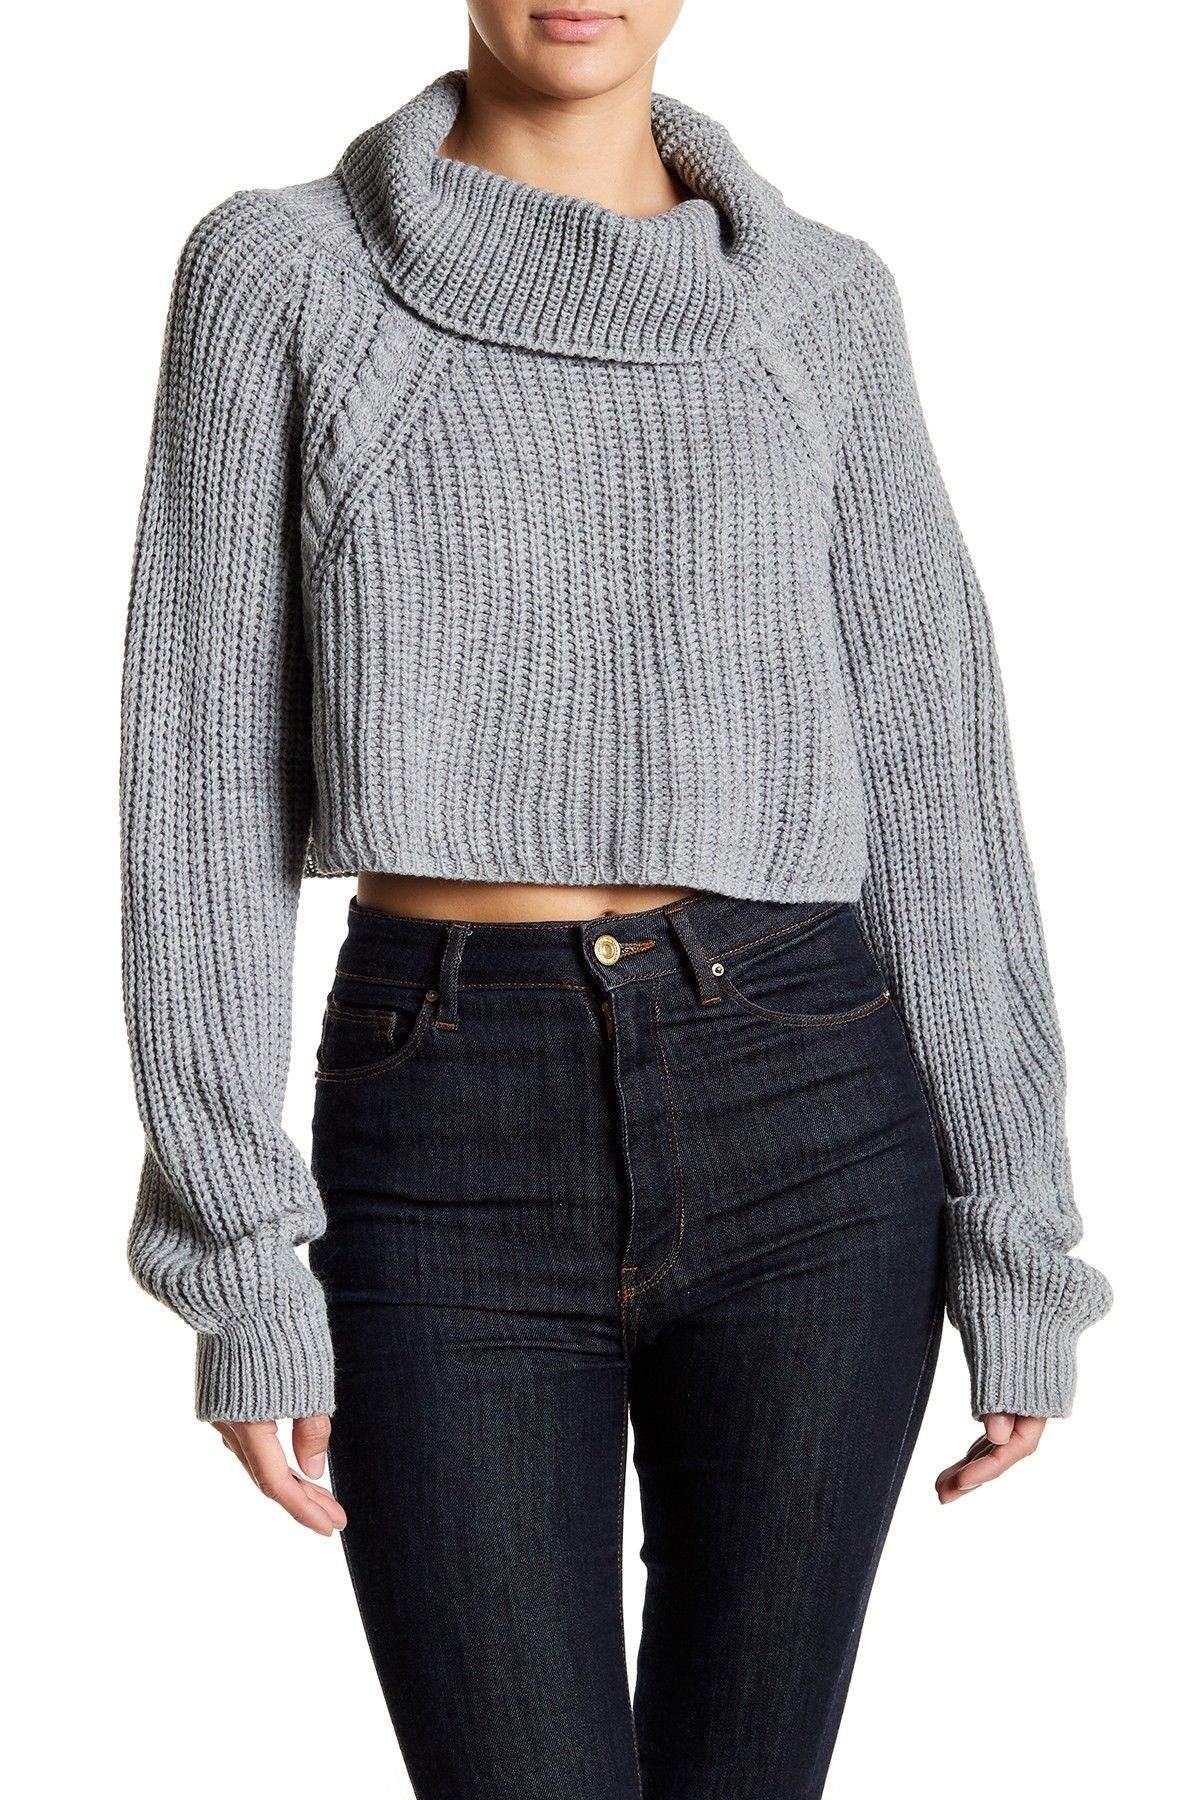 Abound | Cropped Chunky Knit Sweater | Cowl neck and Products